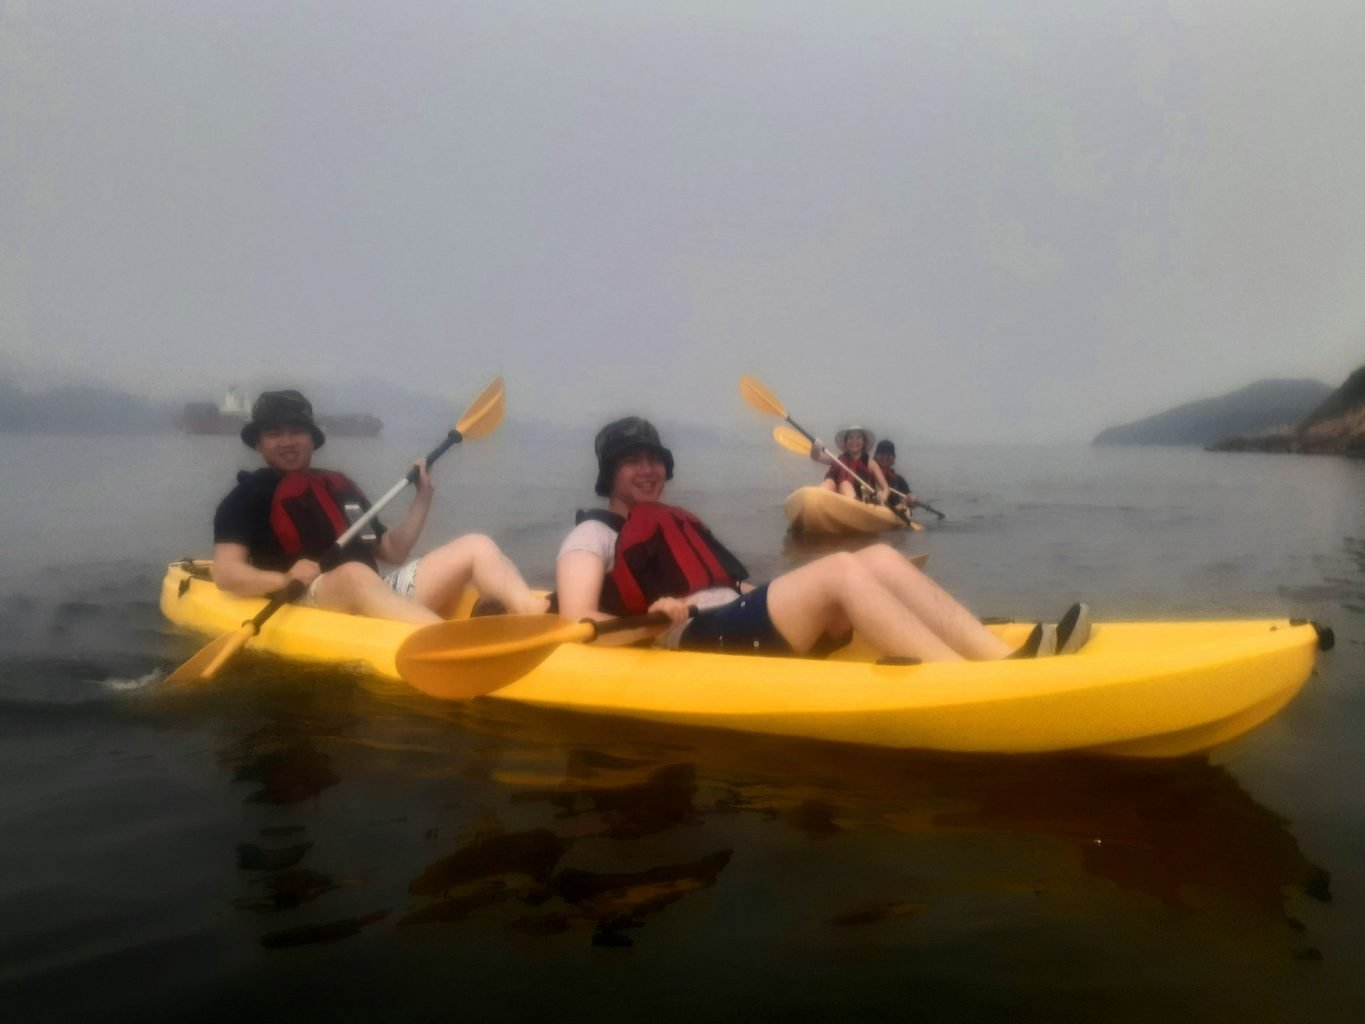 Dog Island Kayak Trip Hong Kong July 17 2019